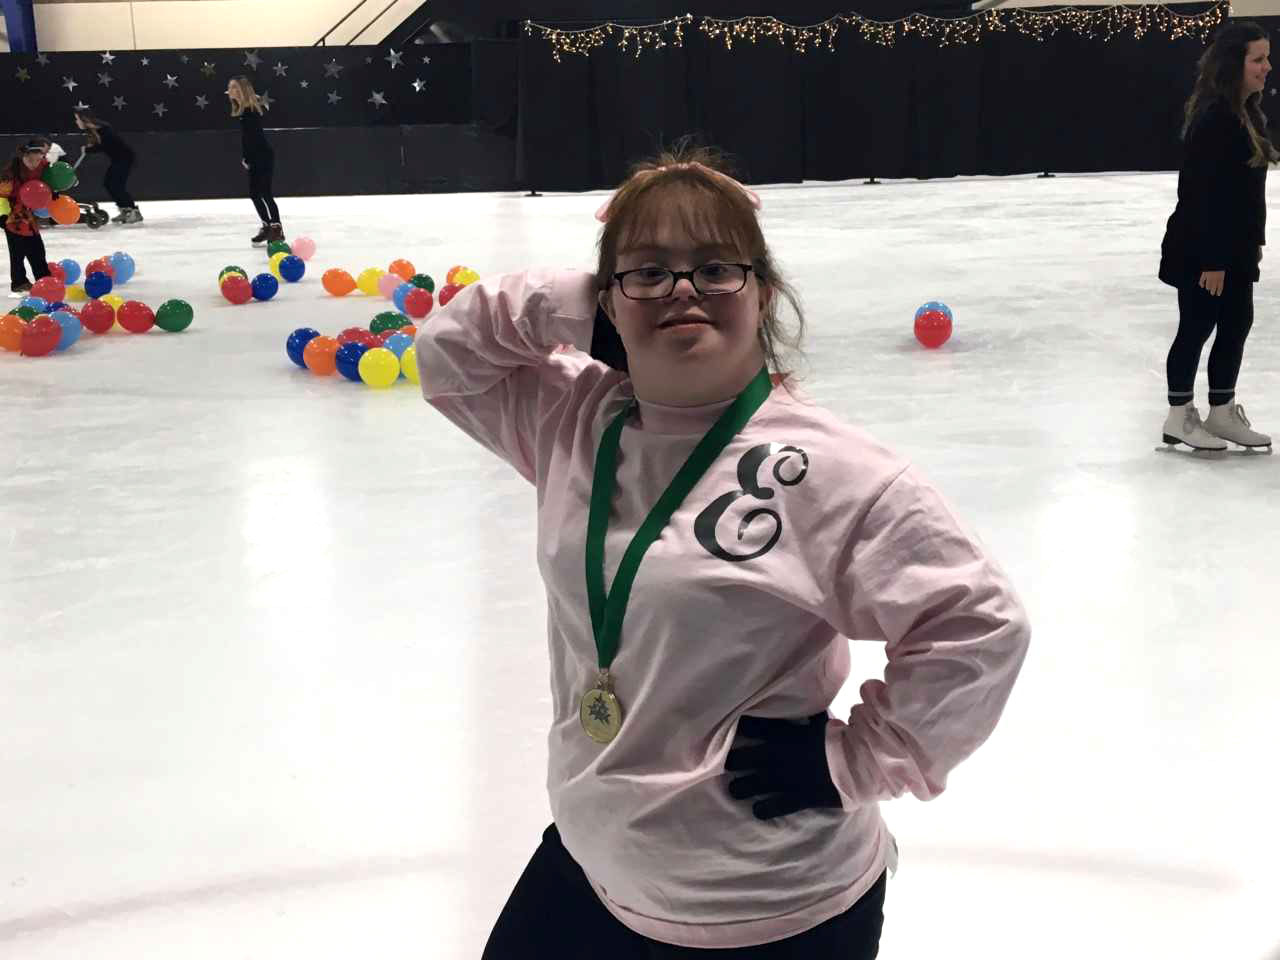 Gliding Stars participant Emily Stevens loved having the opportunity to perform in the ice show.